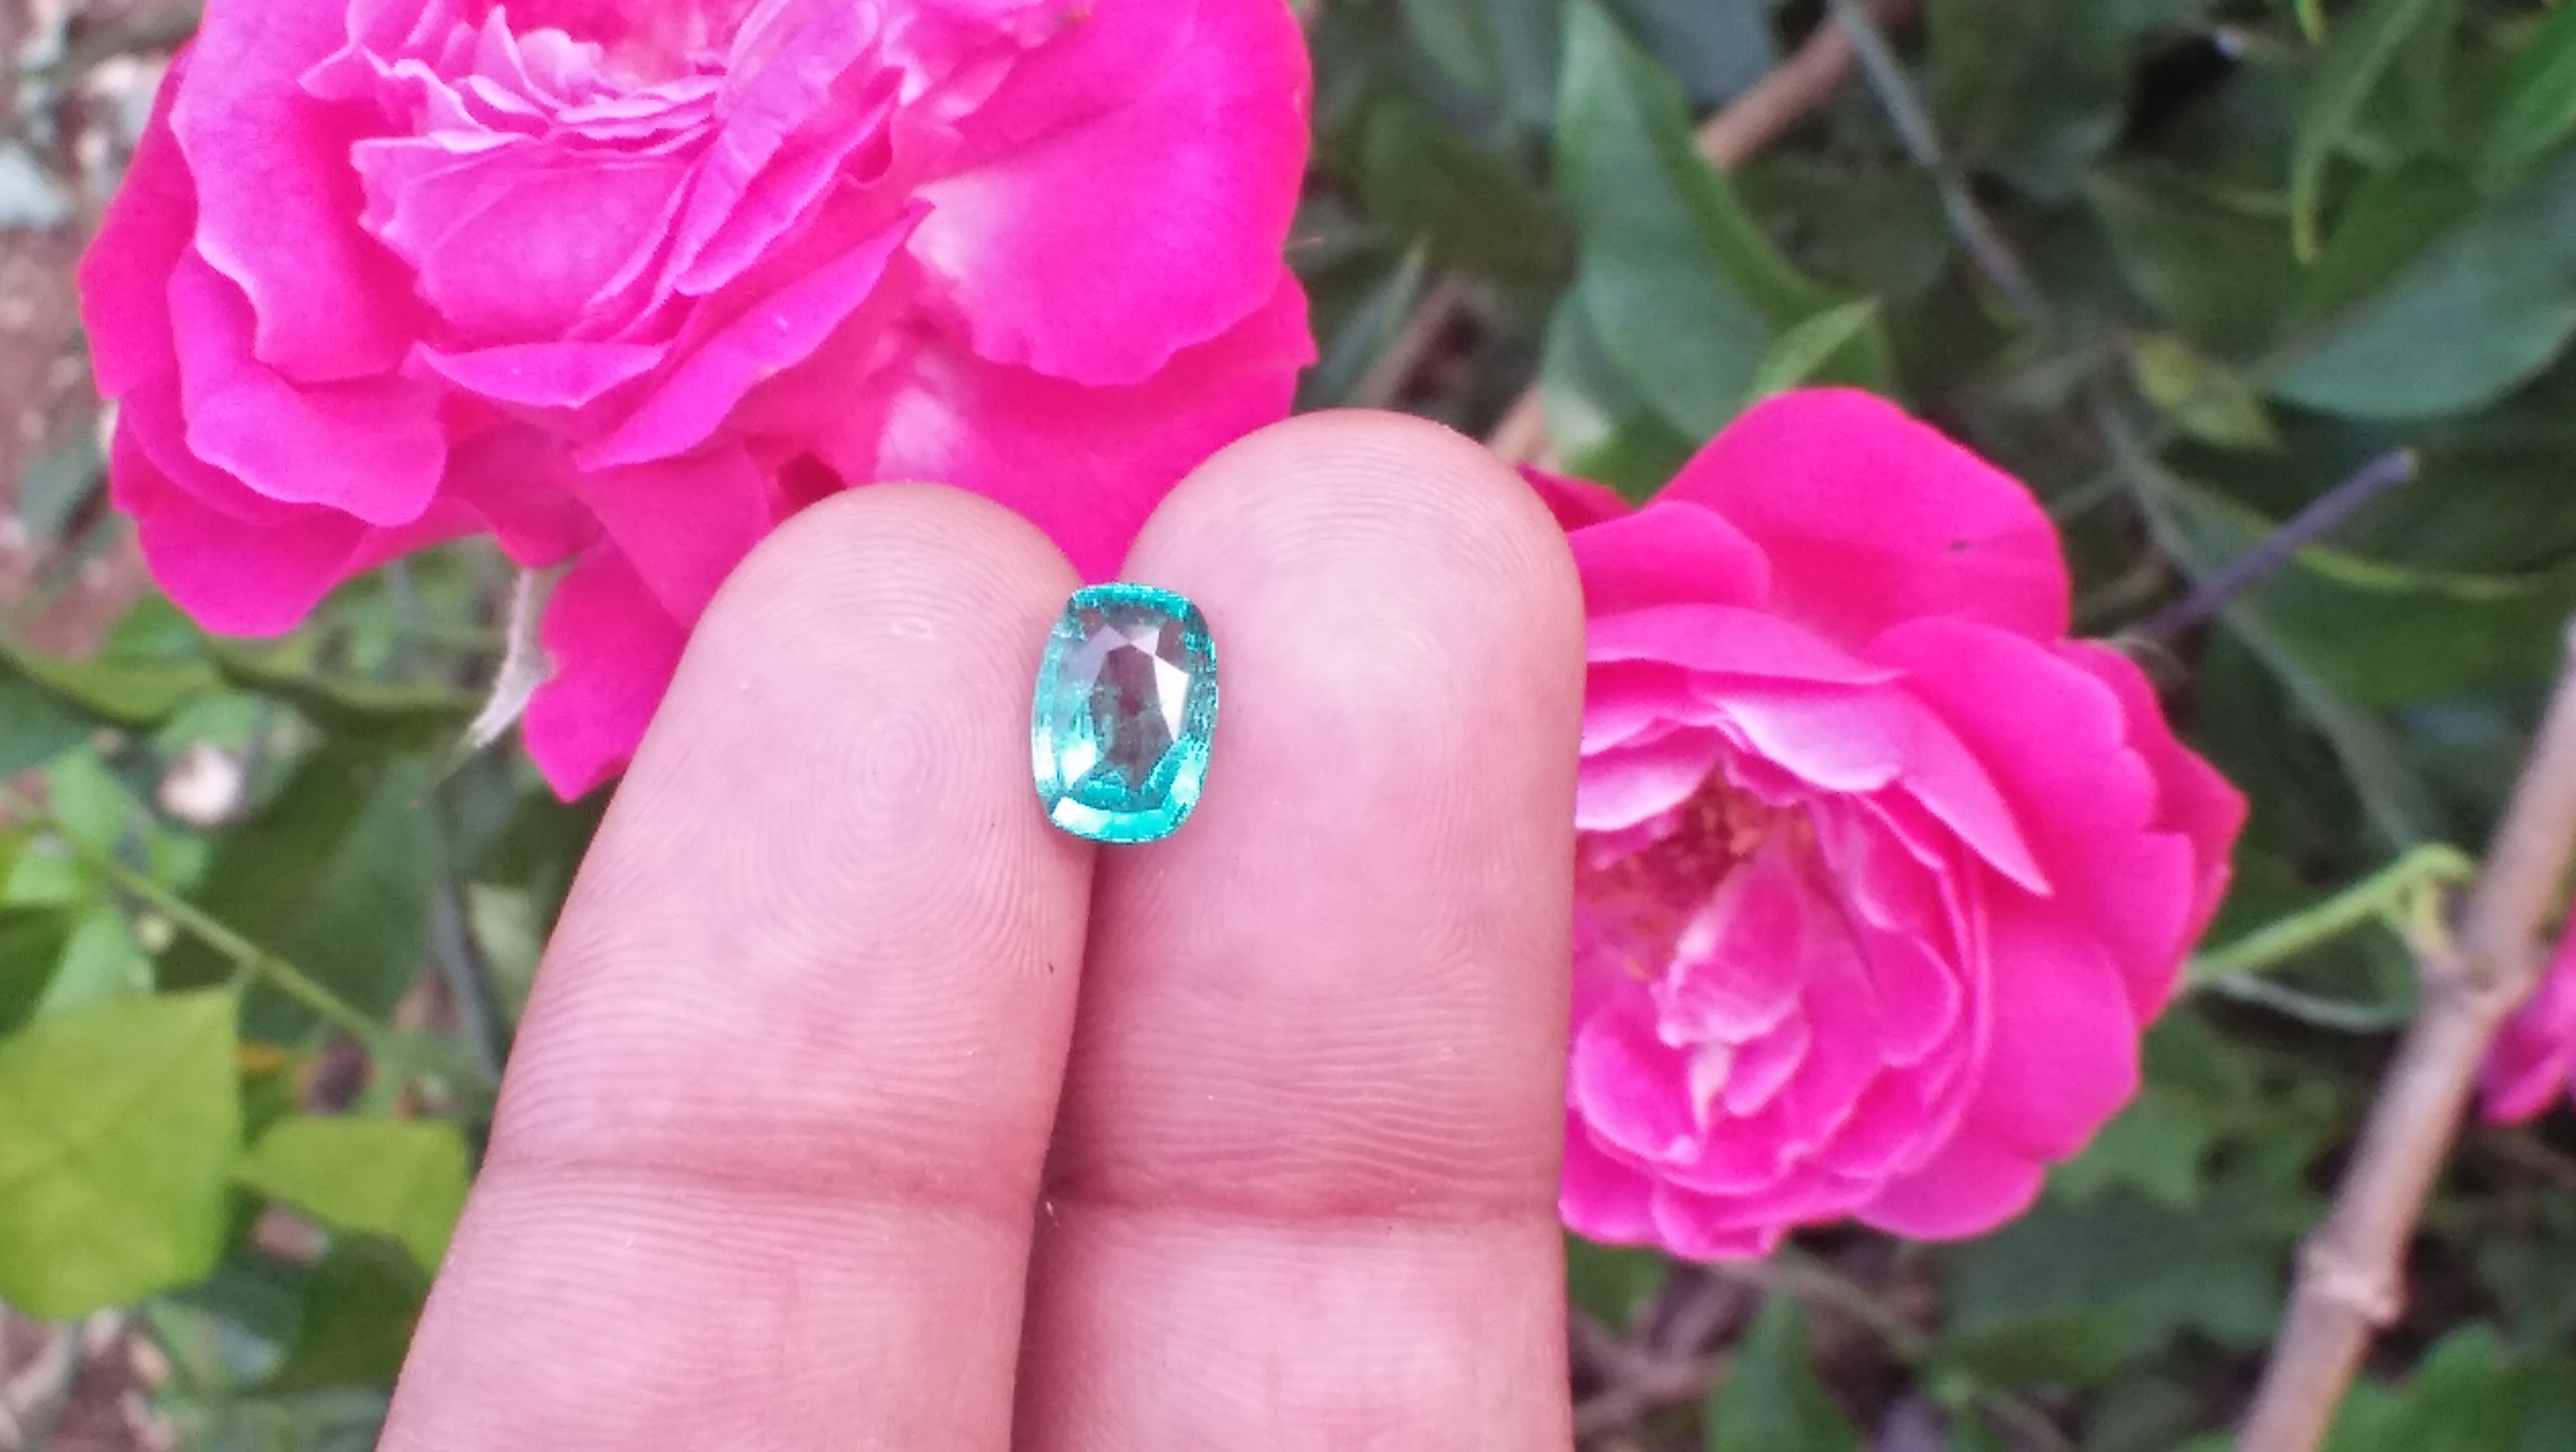 Natural Colombian Emerald Clarity : SI Treatment : Natural/Unheated Dimension : 7.95mm x 5.6mm x 3.61mm Weight : 1.05 Cts Birthstone : May Mineral : Colombia